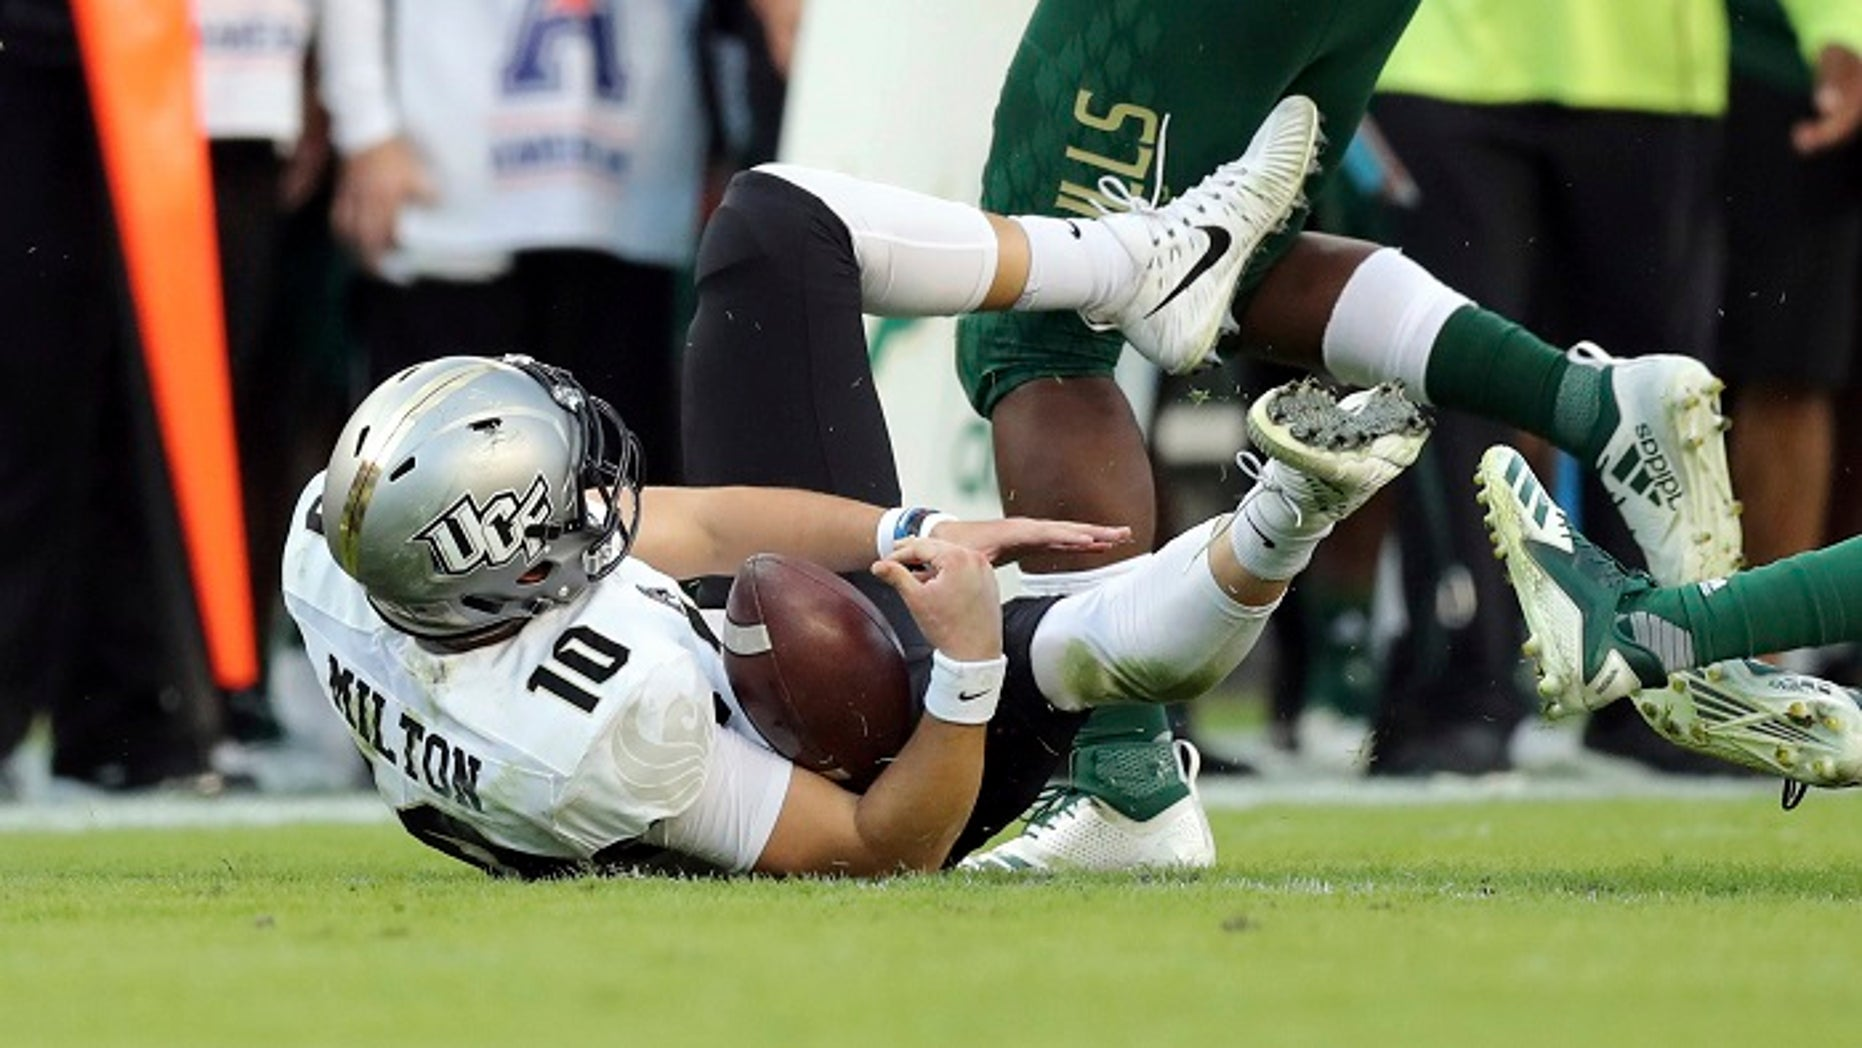 UCF quarterback McKenzie Milton goes down with an apparent knee injury after being tackled in a game against South Florida on Friday, Nov. 23, 2018.